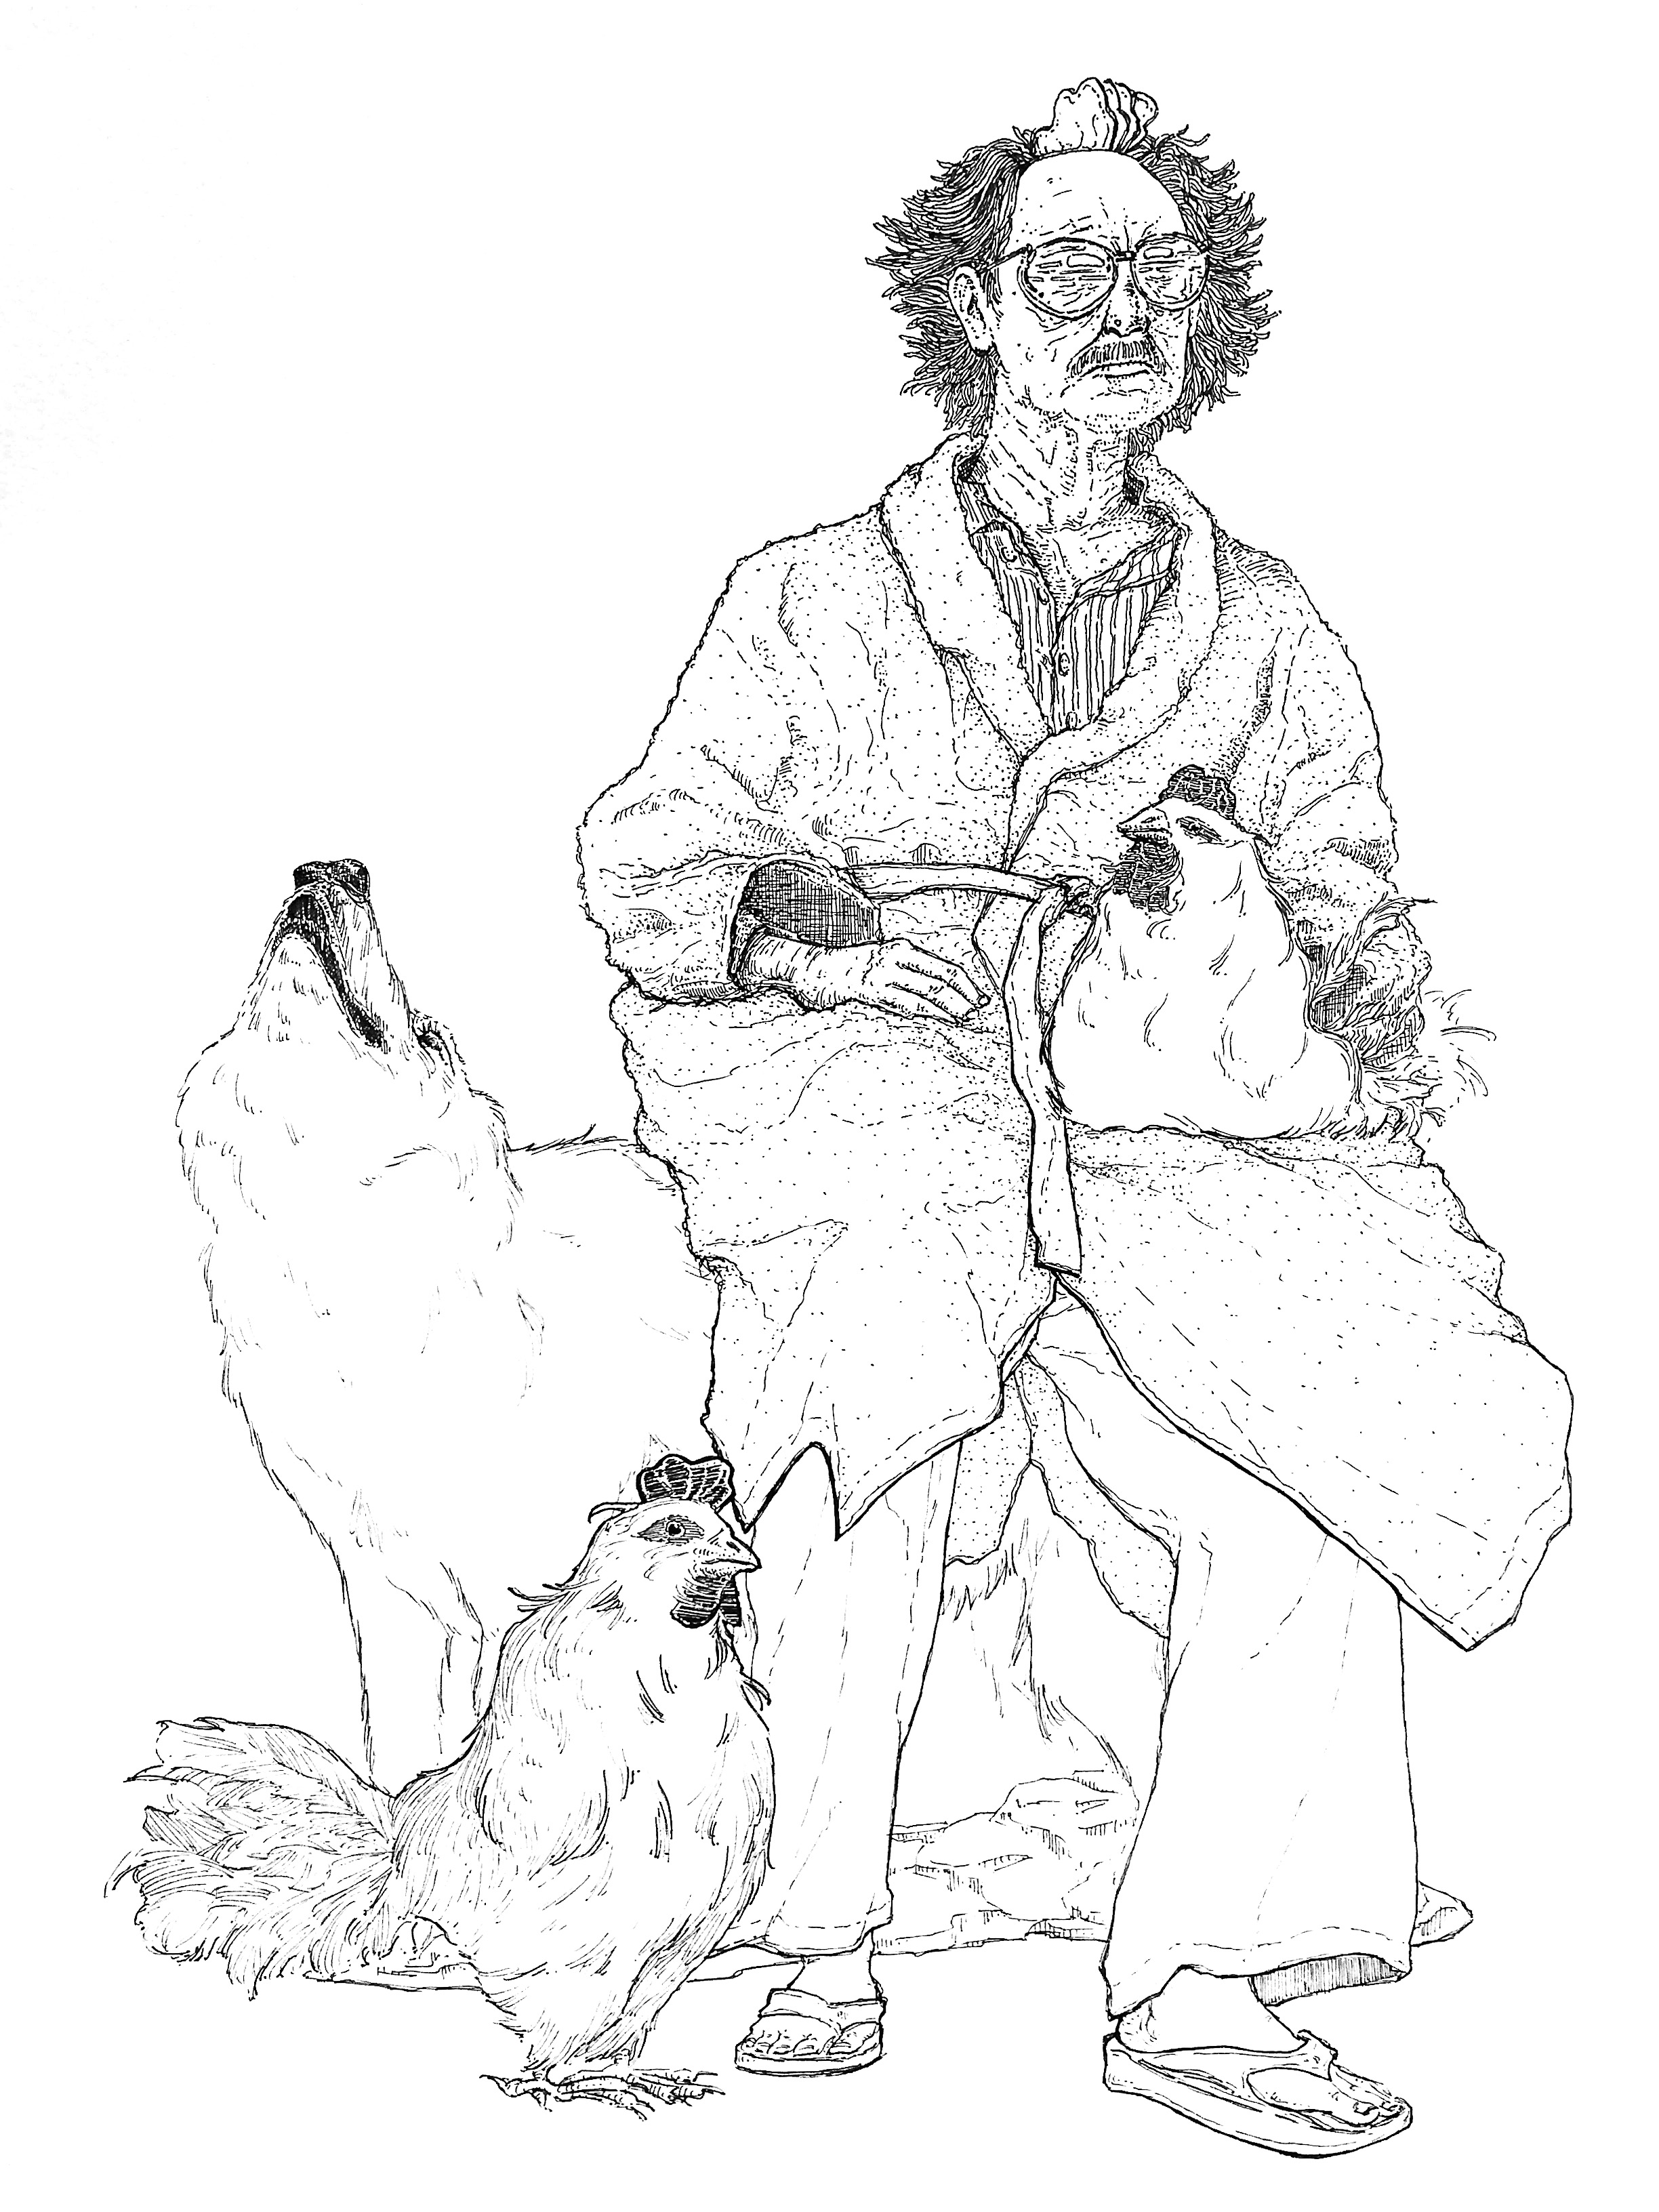 Man with Wolf and Hens